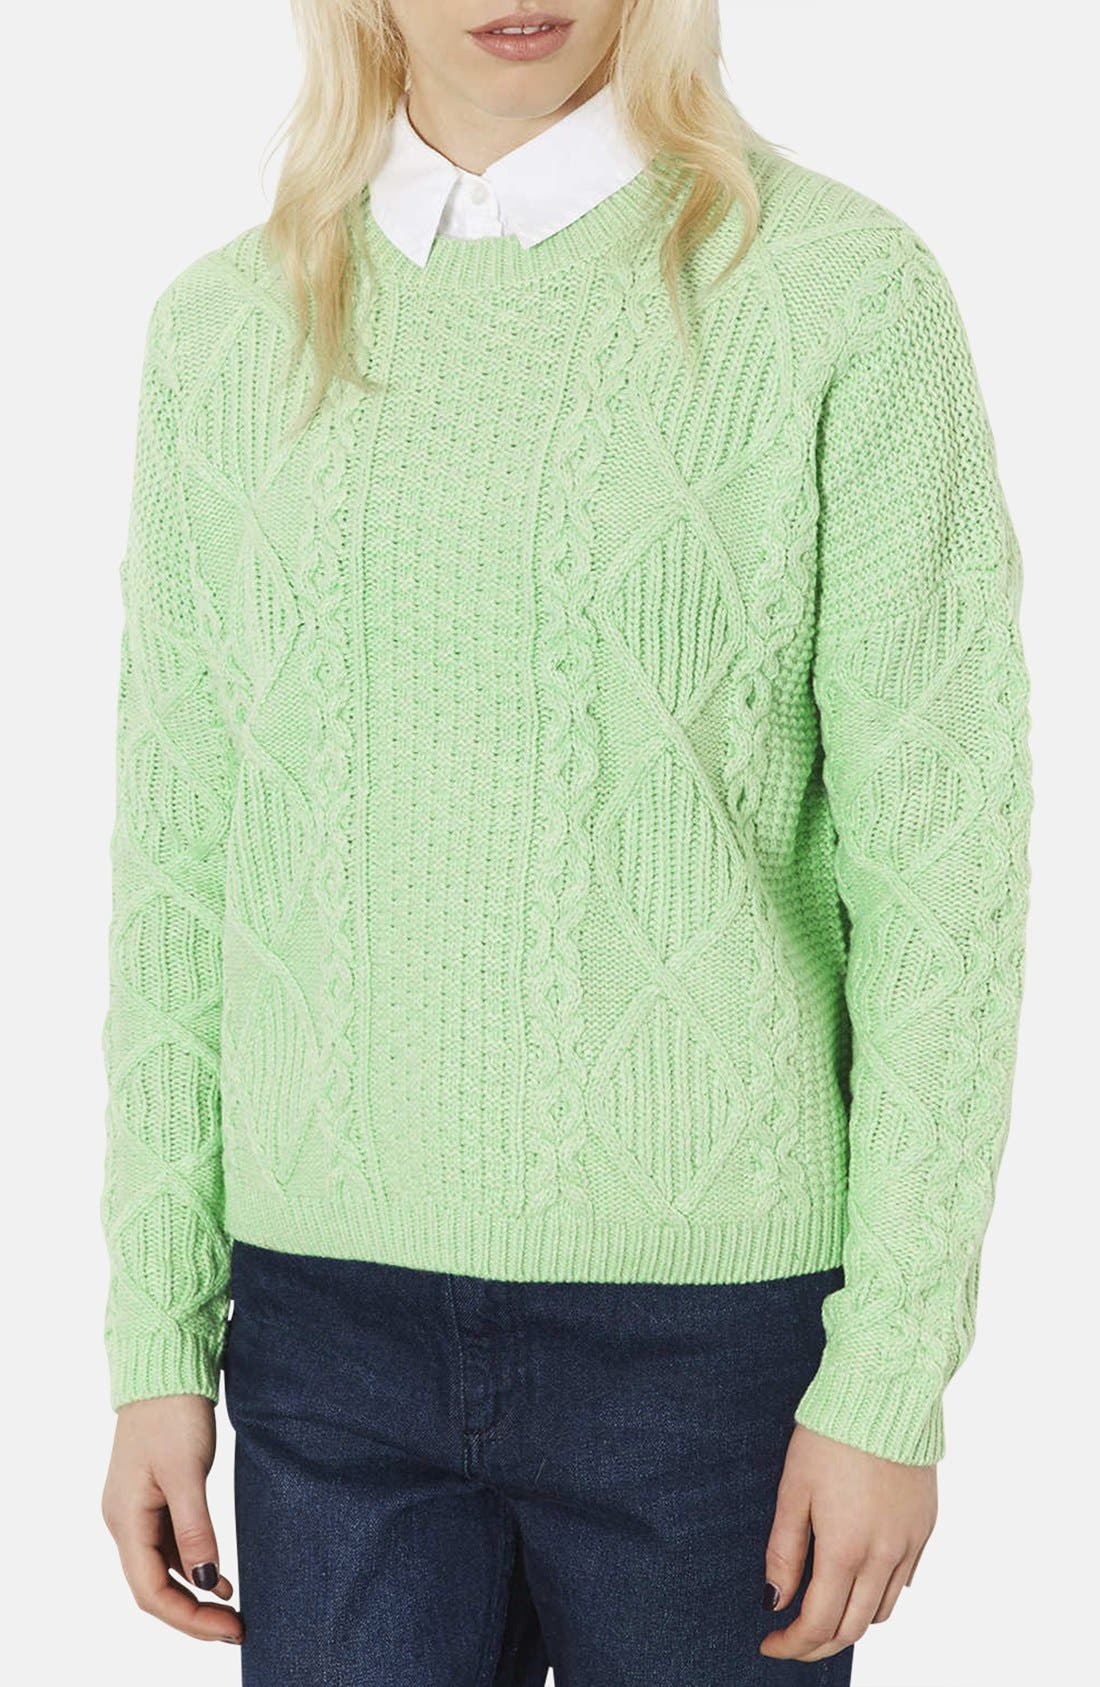 Crewneck Cable Knit Sweater,                             Main thumbnail 1, color,                             340